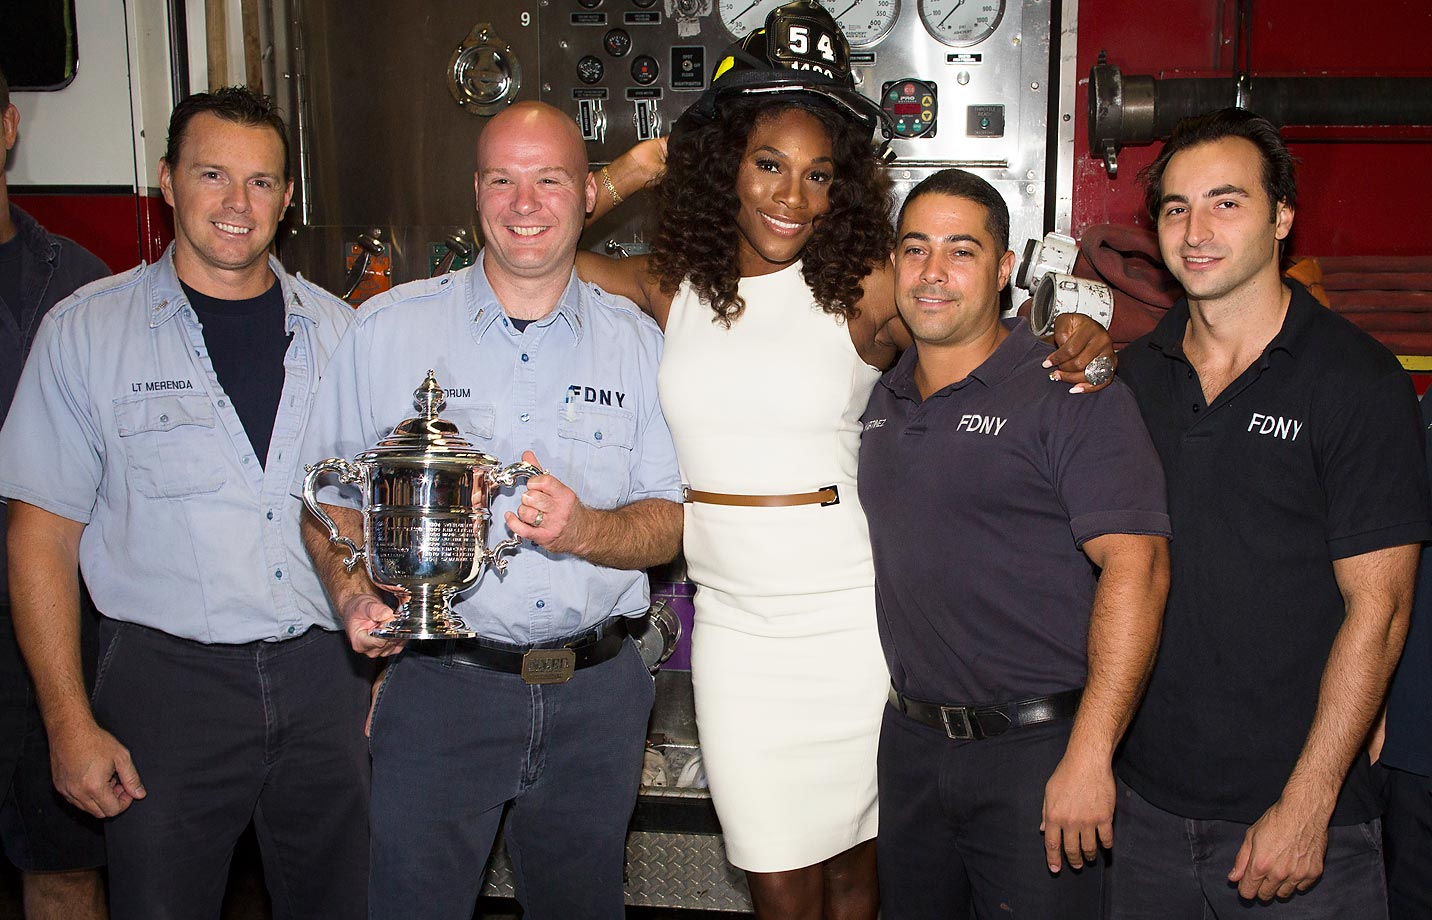 Serena poses with members of Engine 54 Ladder 4 Battalion 9 in New York the day after winning the U.S. Open.